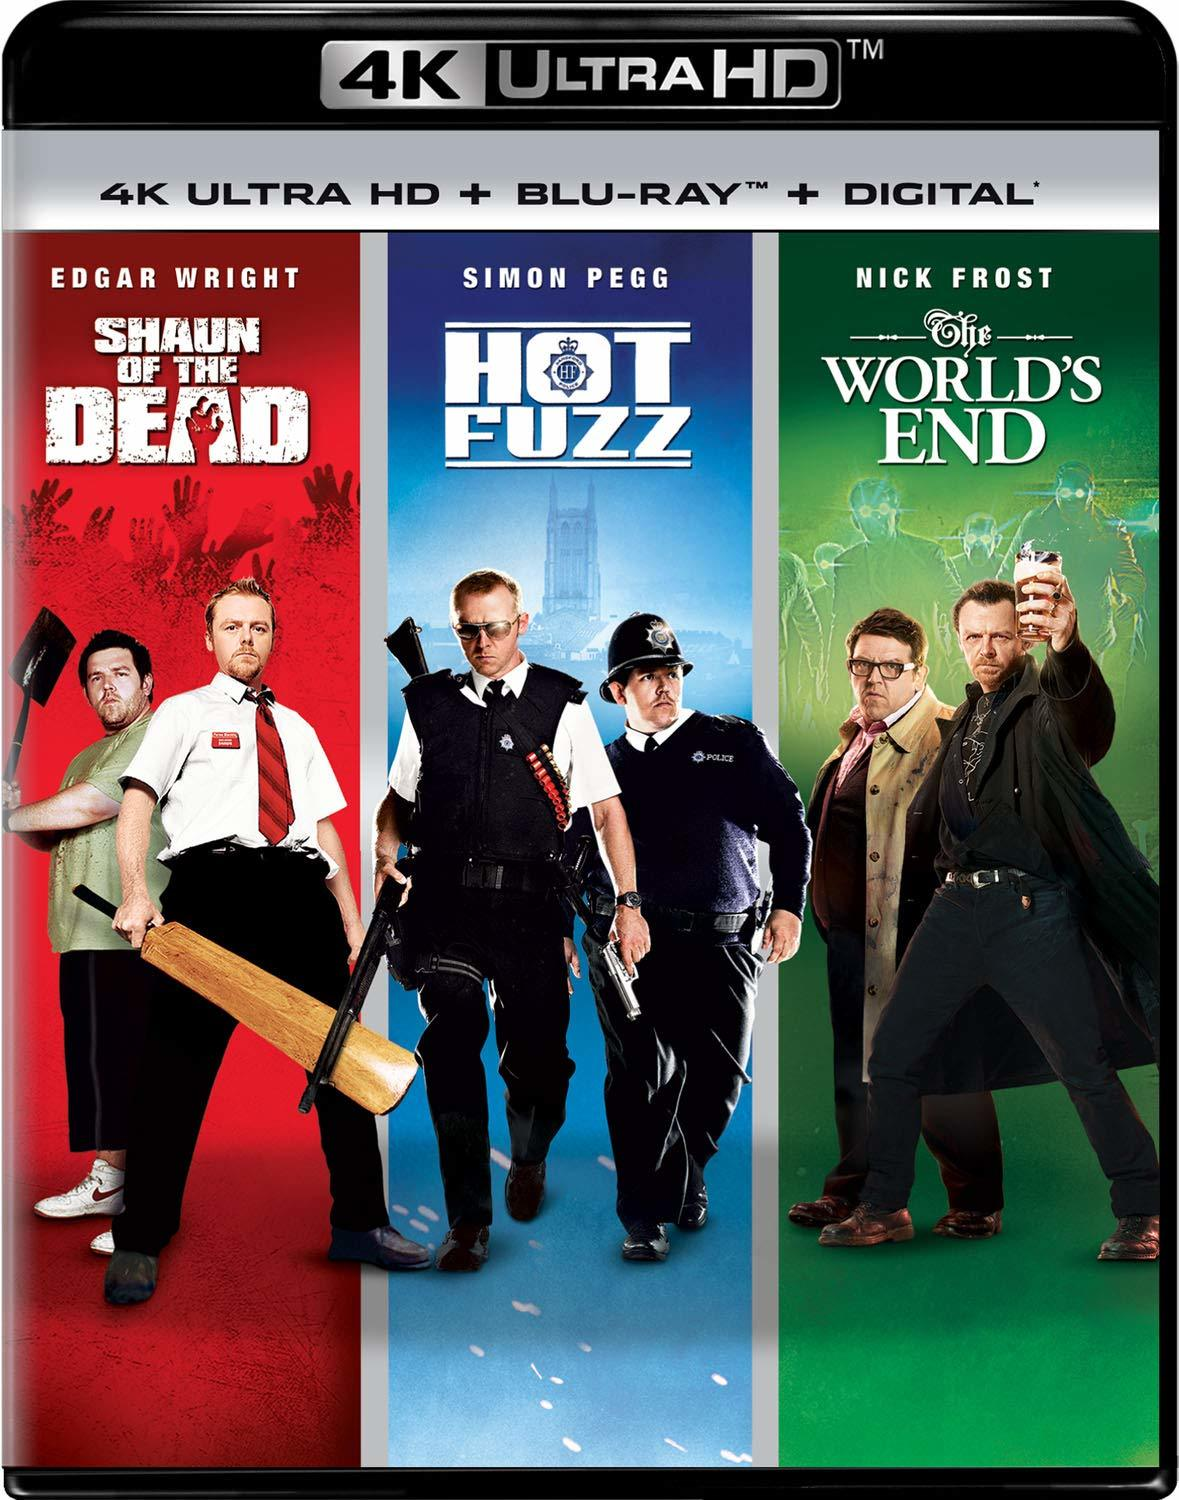 Cornetto Trilogy Simon Pegg